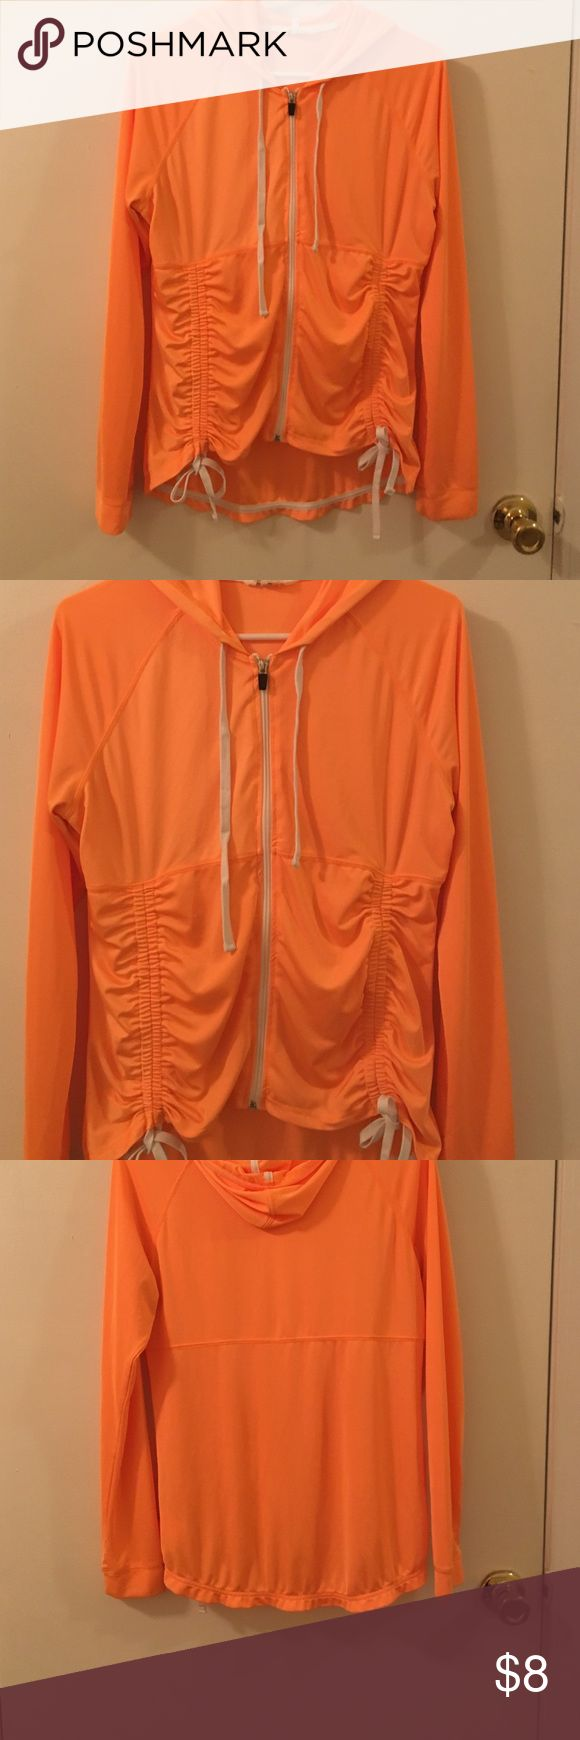 Orange hoodie Very good condition Energie Tops Sweatshirts & Hoodies